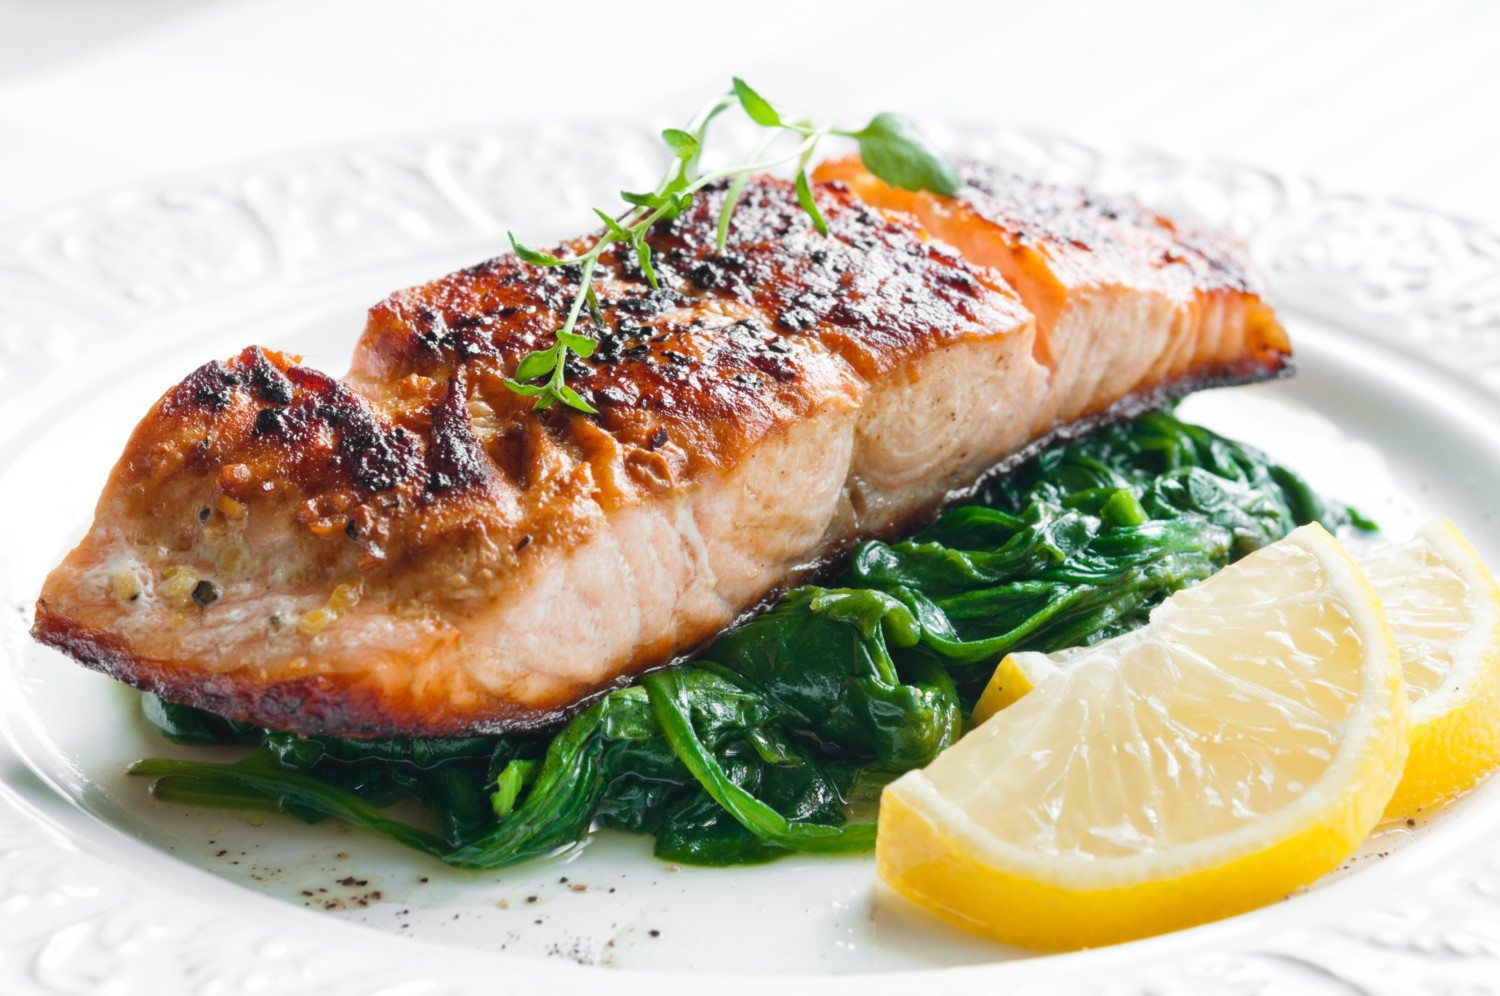 10 Best Foods For Your Heart Salmon recipes, Salmon